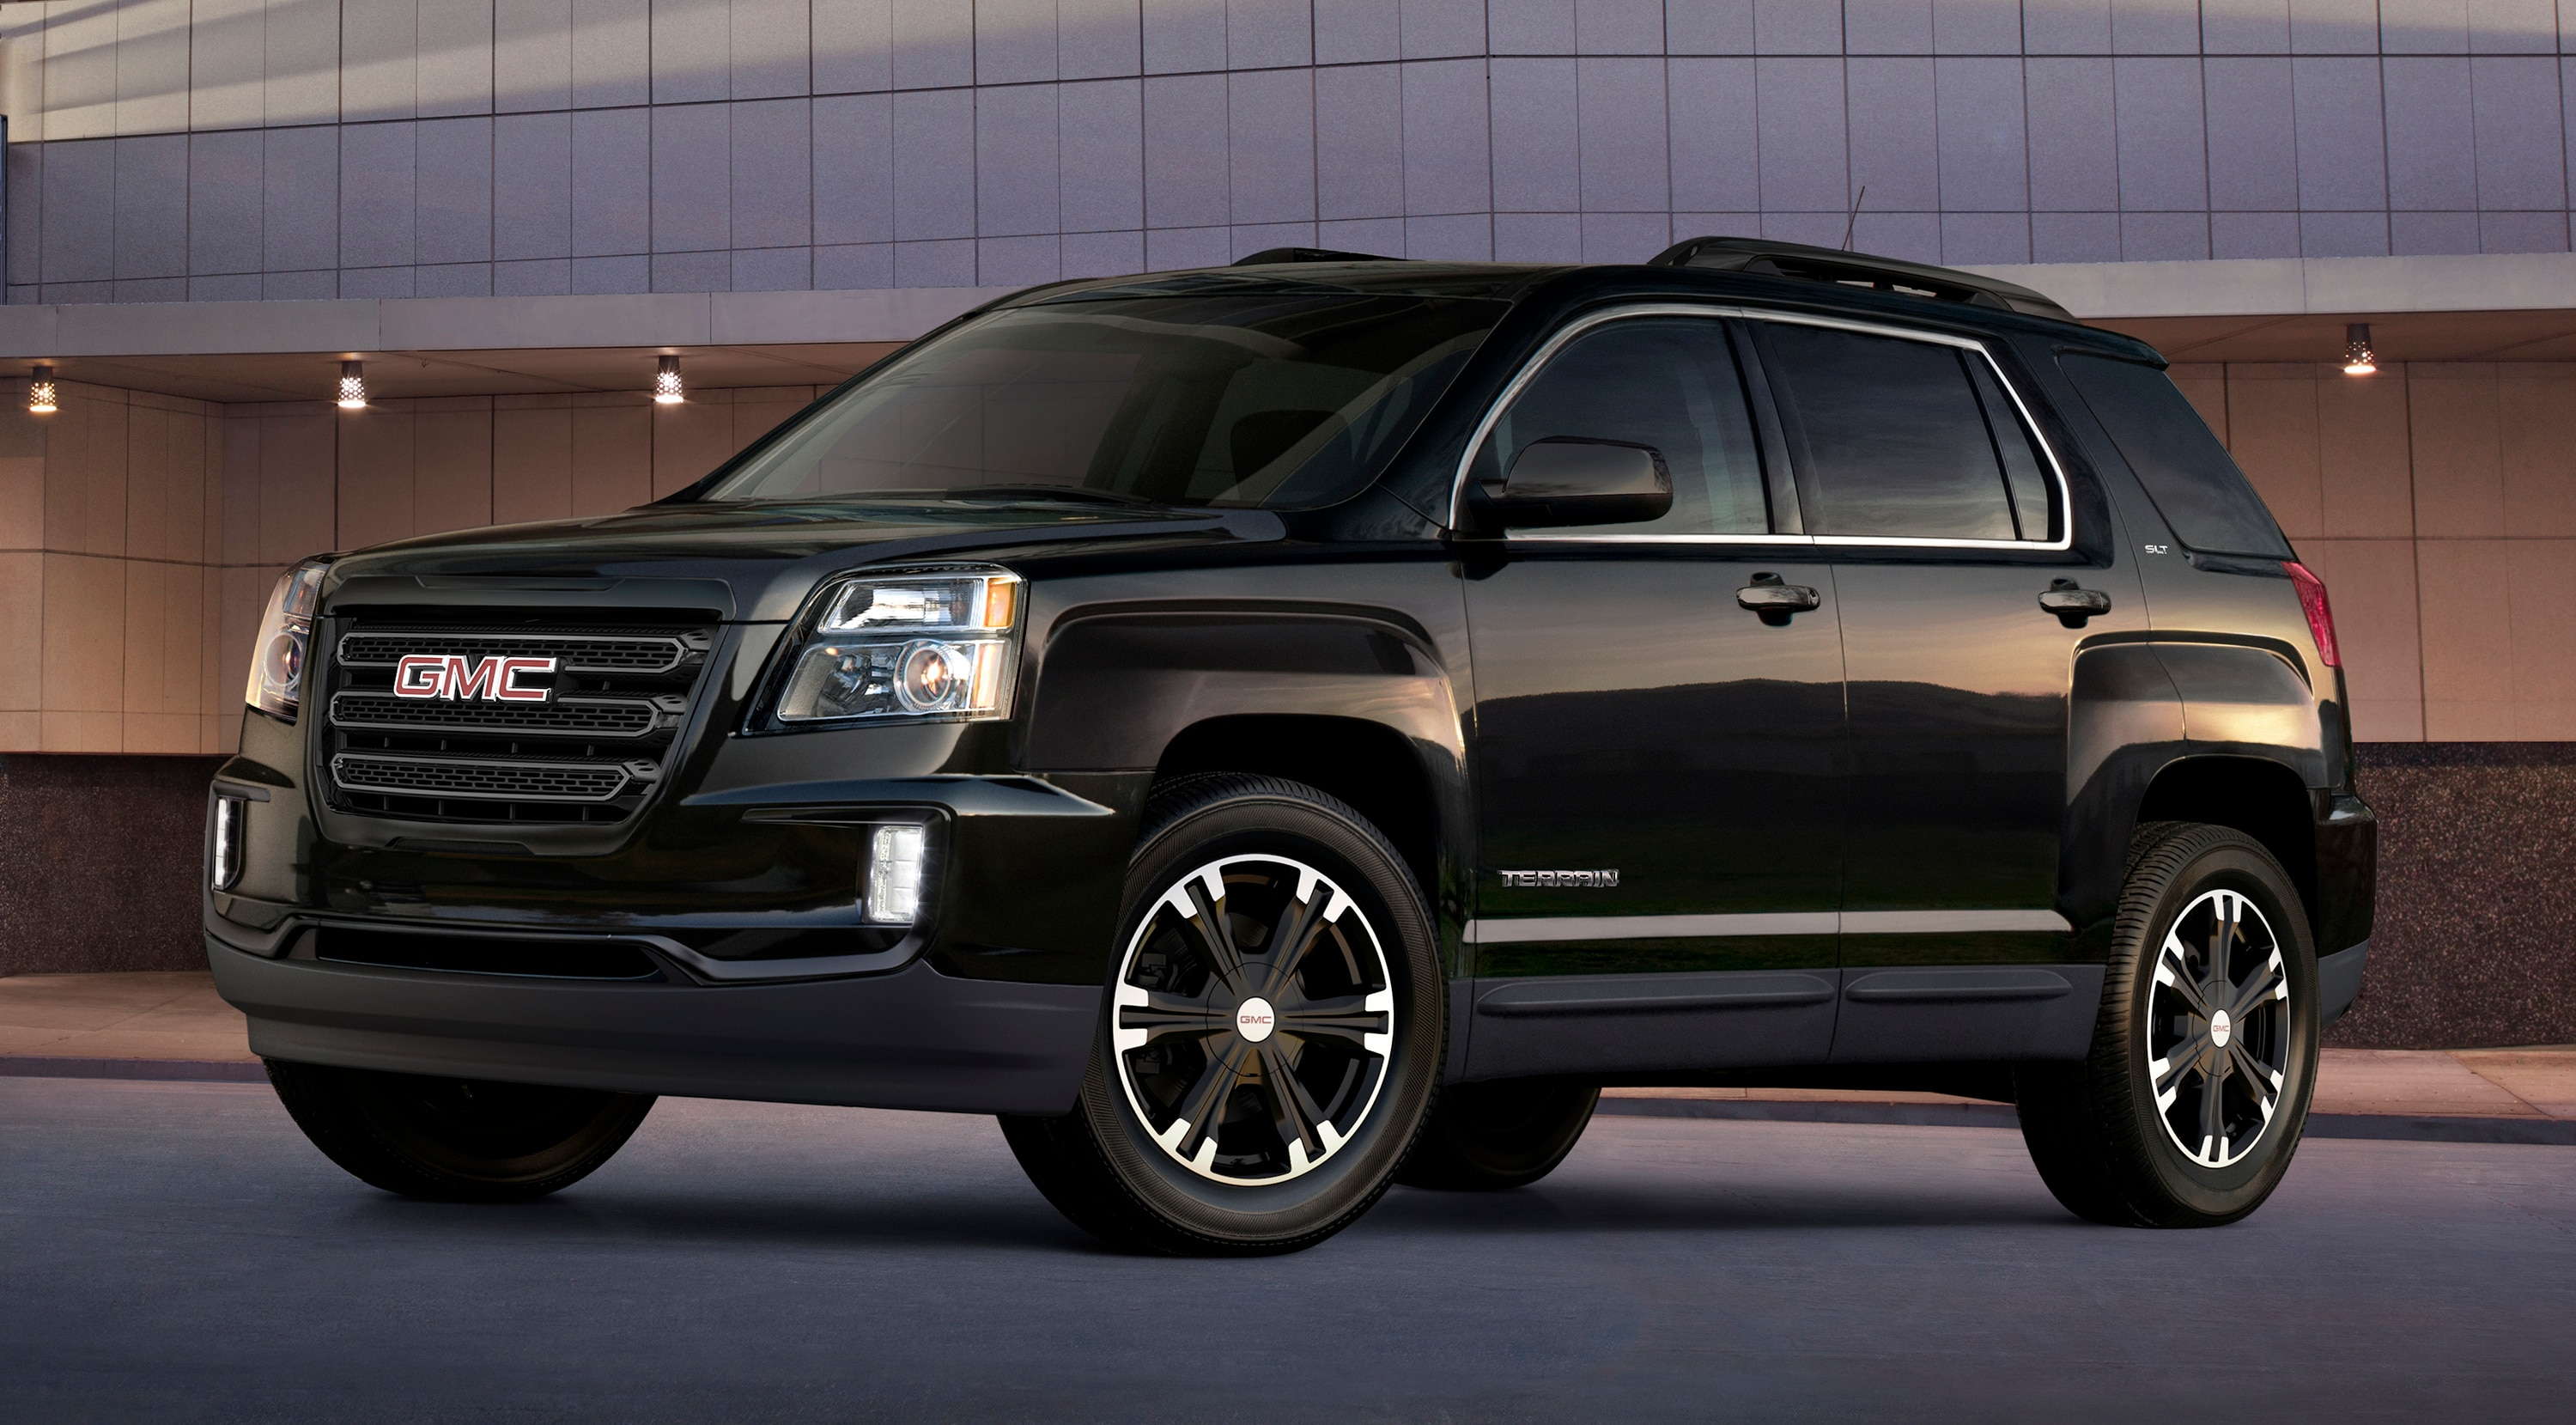 Gmc Introduces 2017 Terrain Nightfall Edition